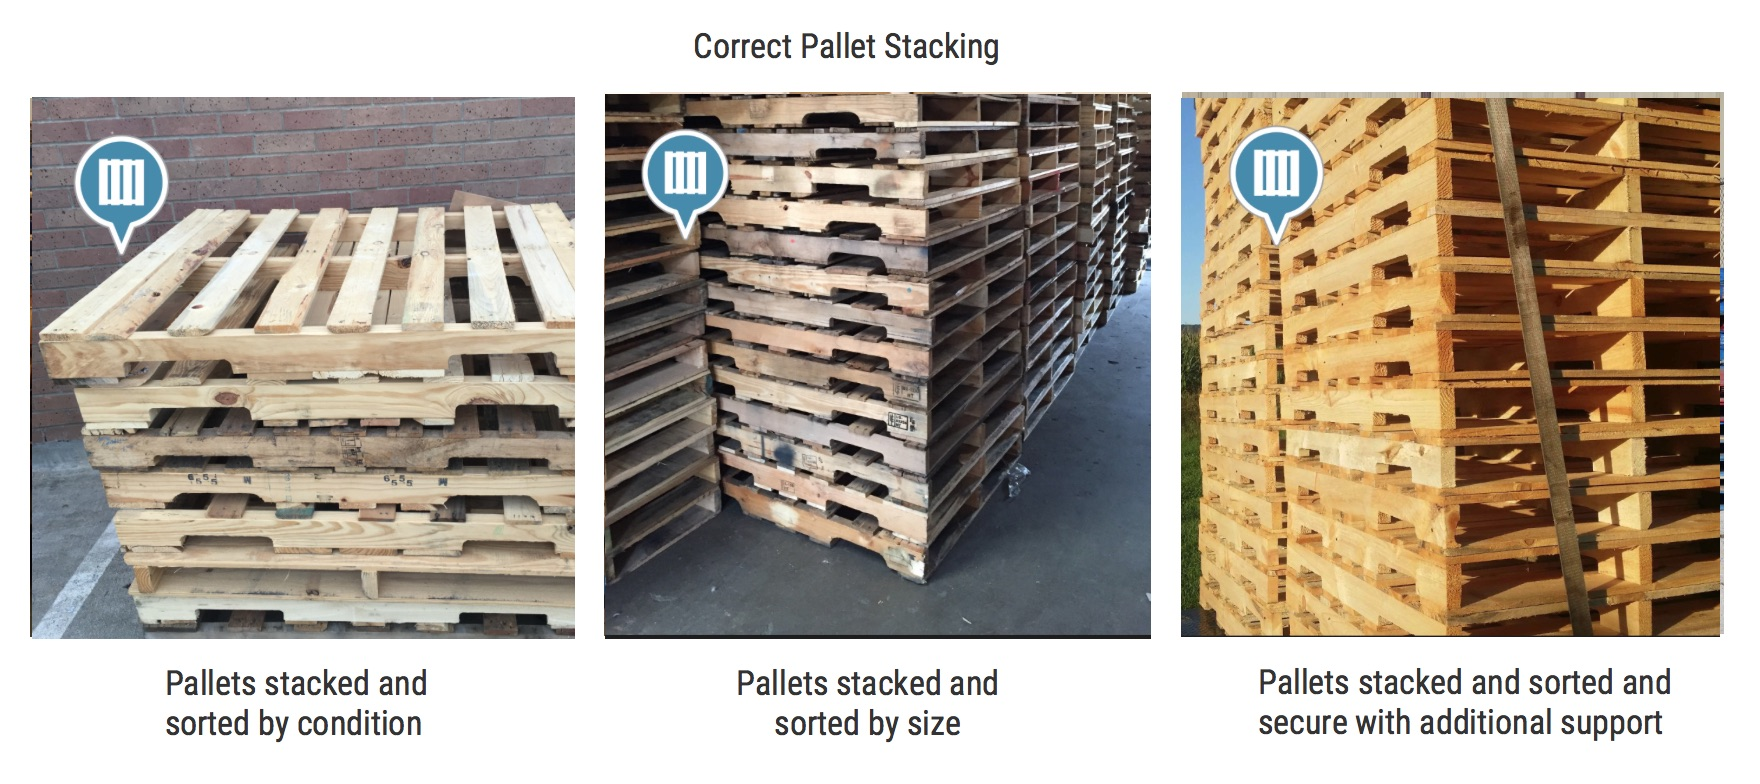 Correct Pallet Stacking